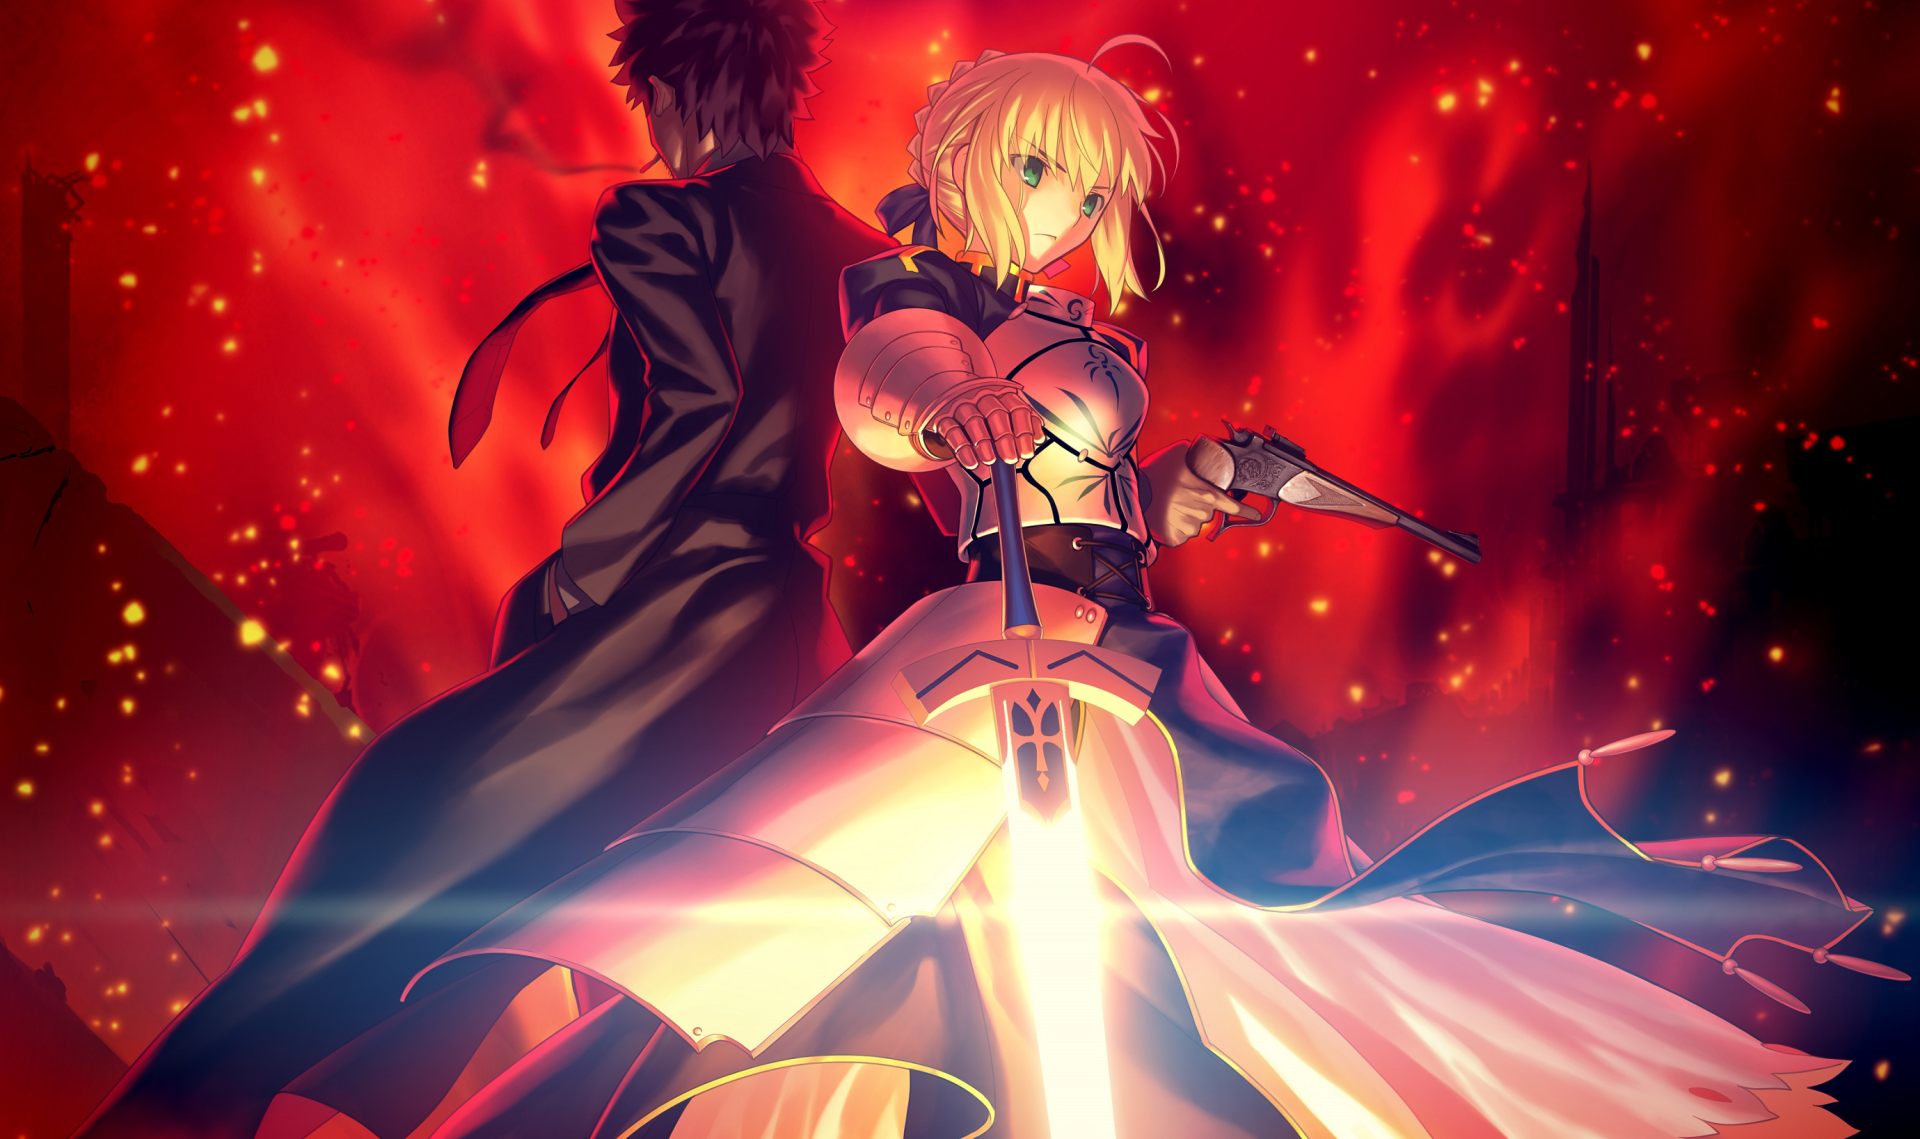 Anime - Fate/Grand Order  Fate/Stay Night Saber (Fate Series) Wallpaper